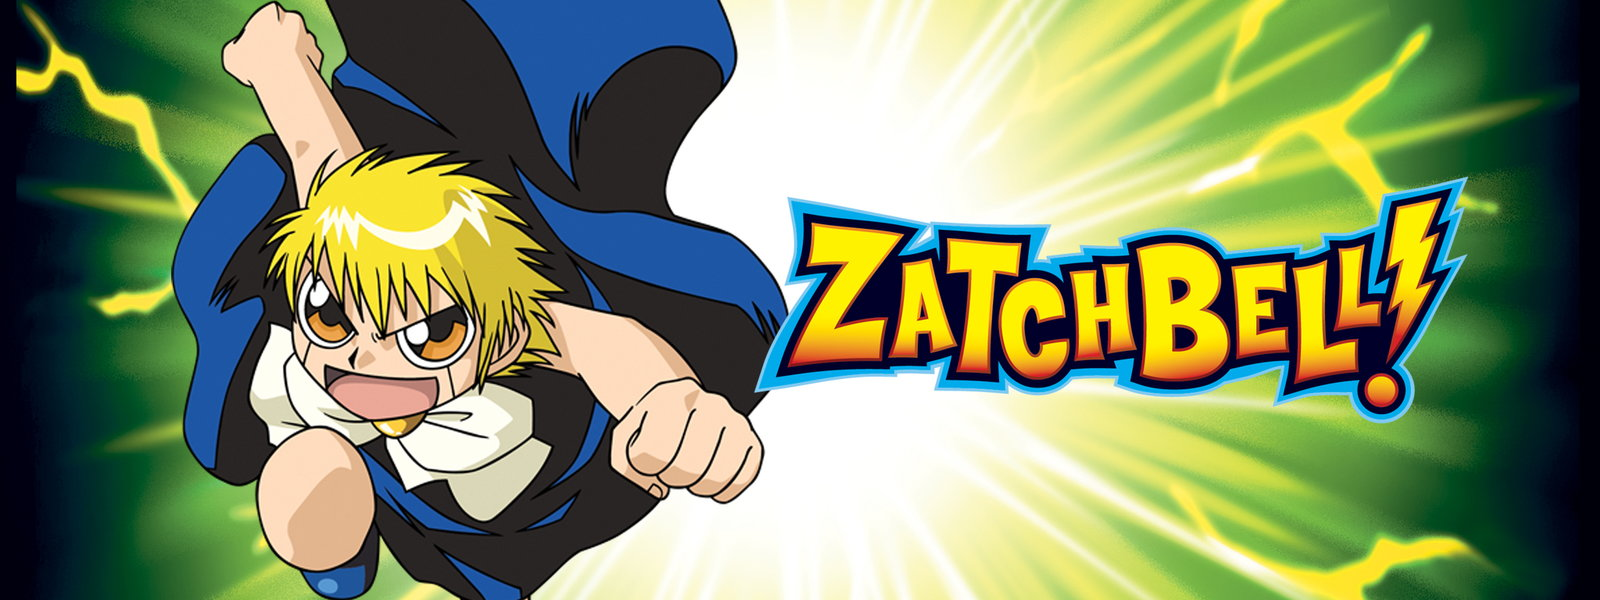 Zatch Bell Backgrounds, Compatible - PC, Mobile, Gadgets  1600x600 px